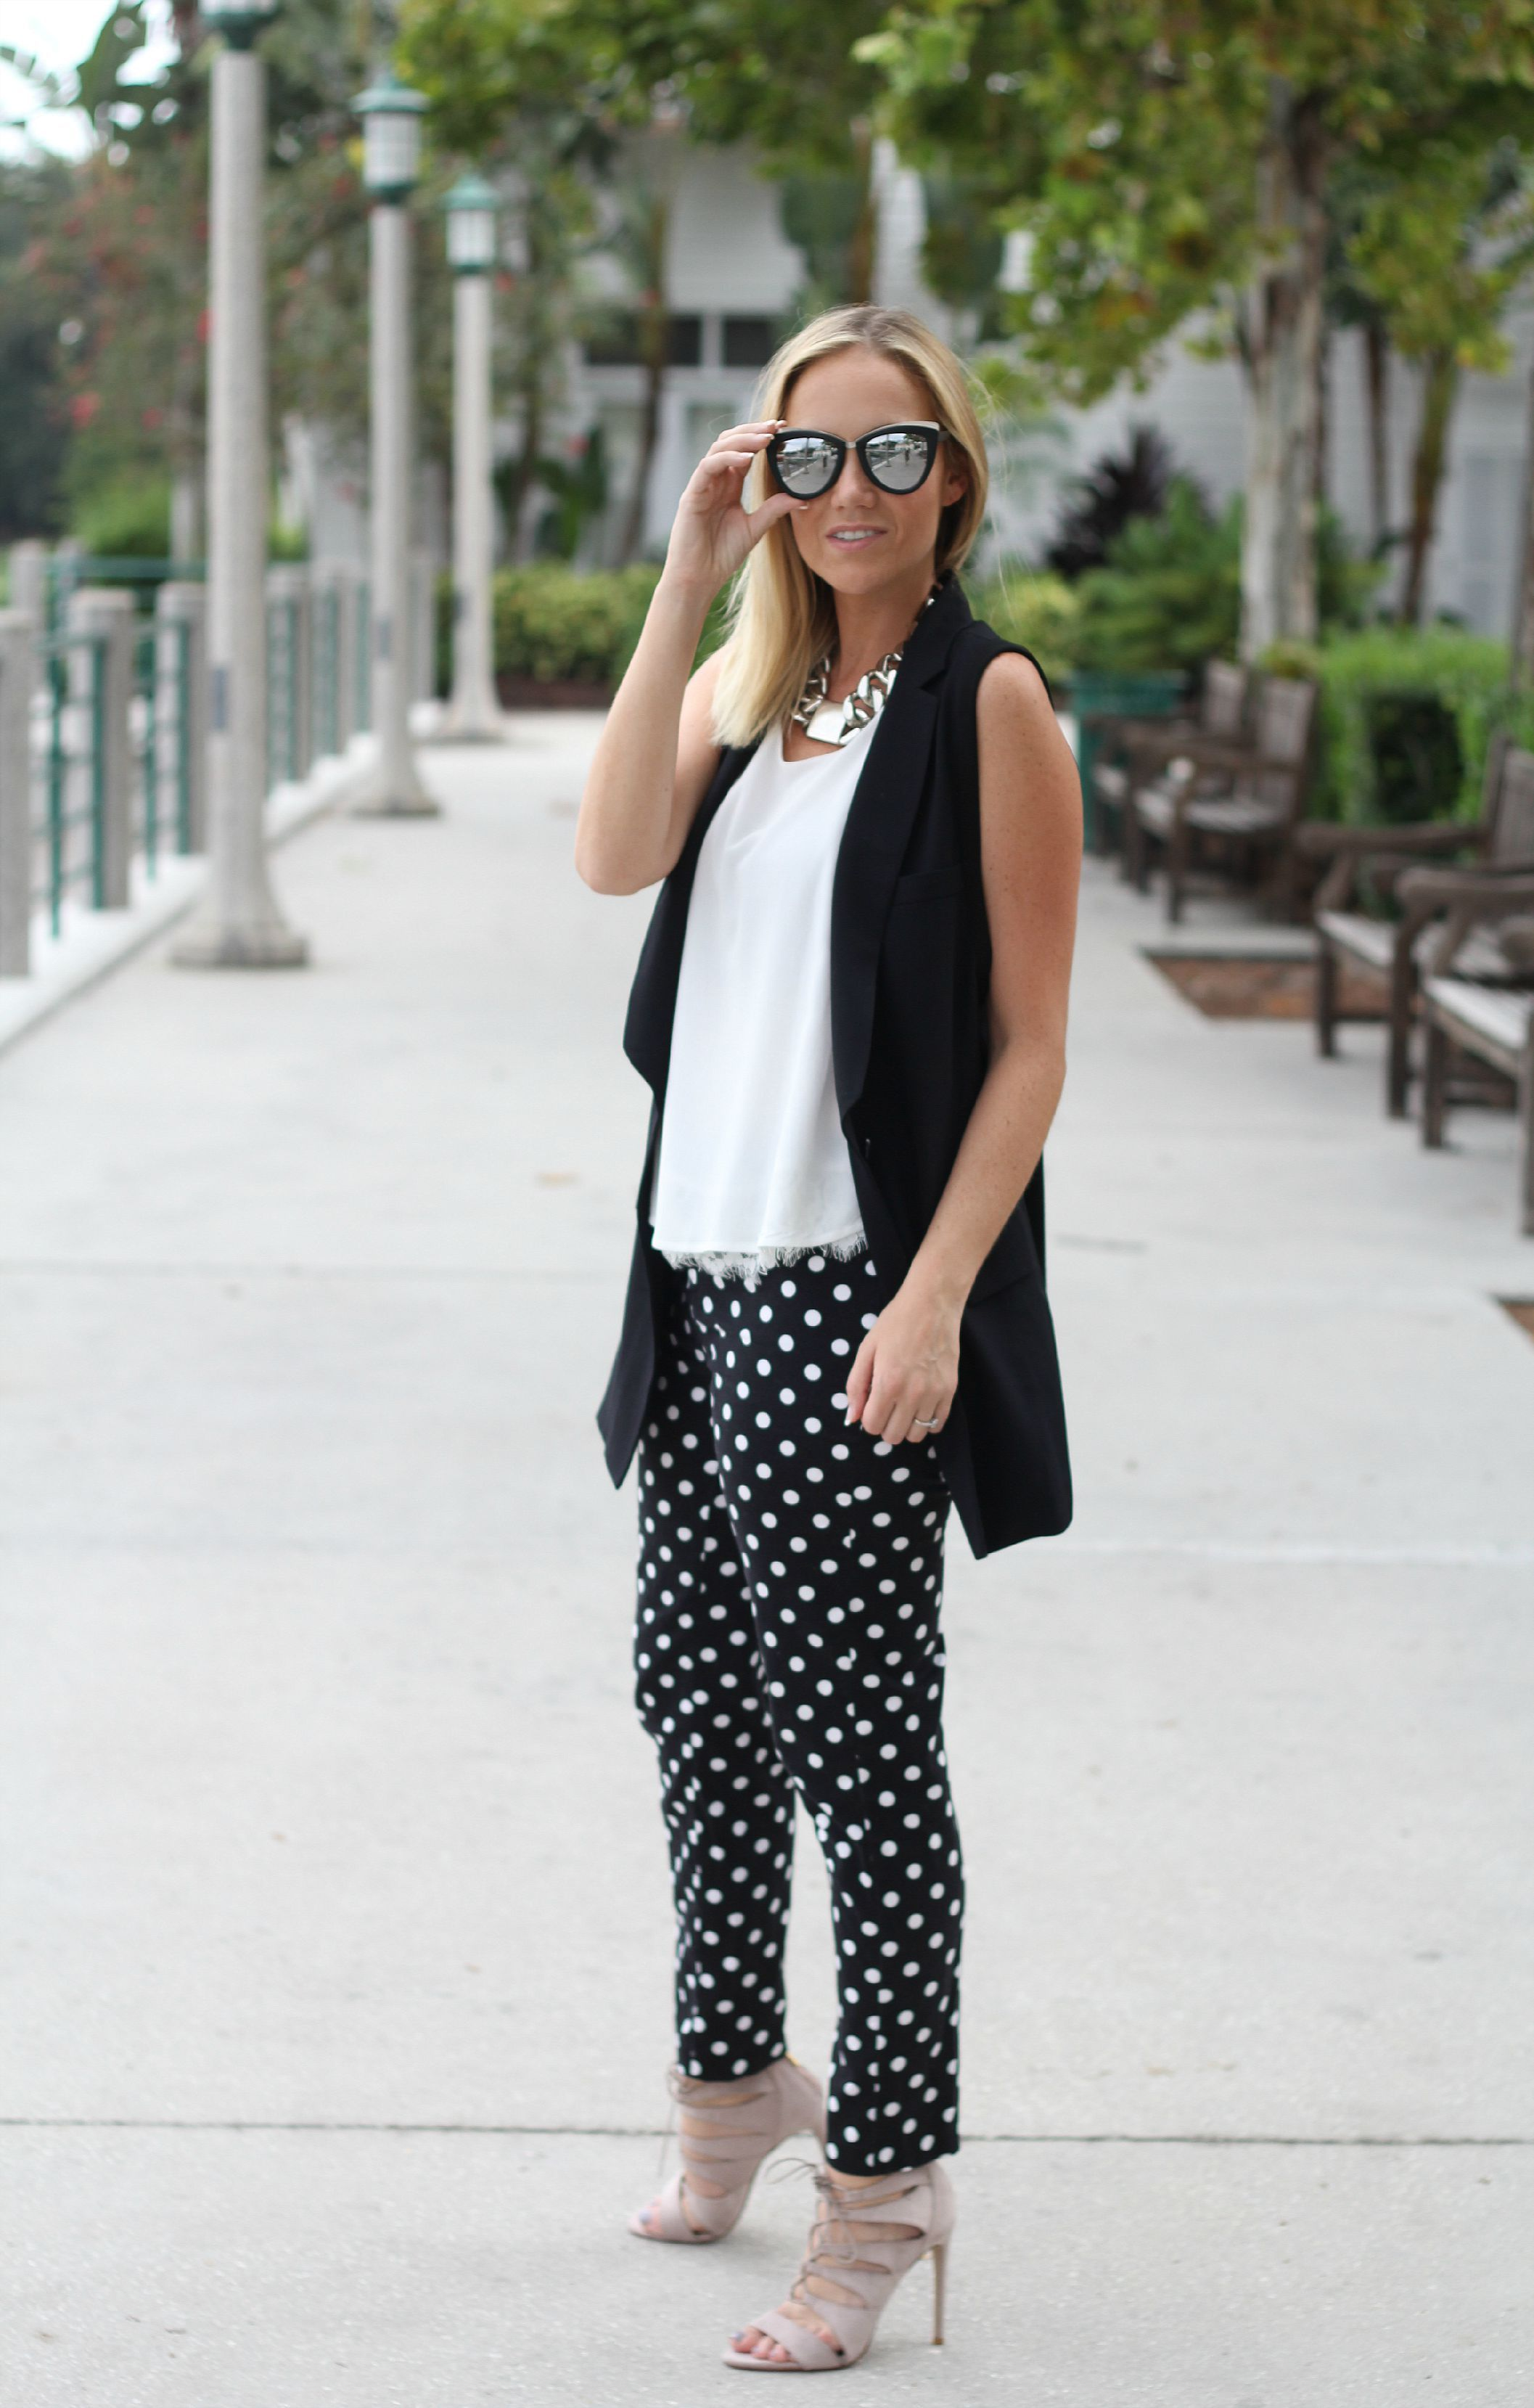 243114a834a How To Wear Polka Dot Pants